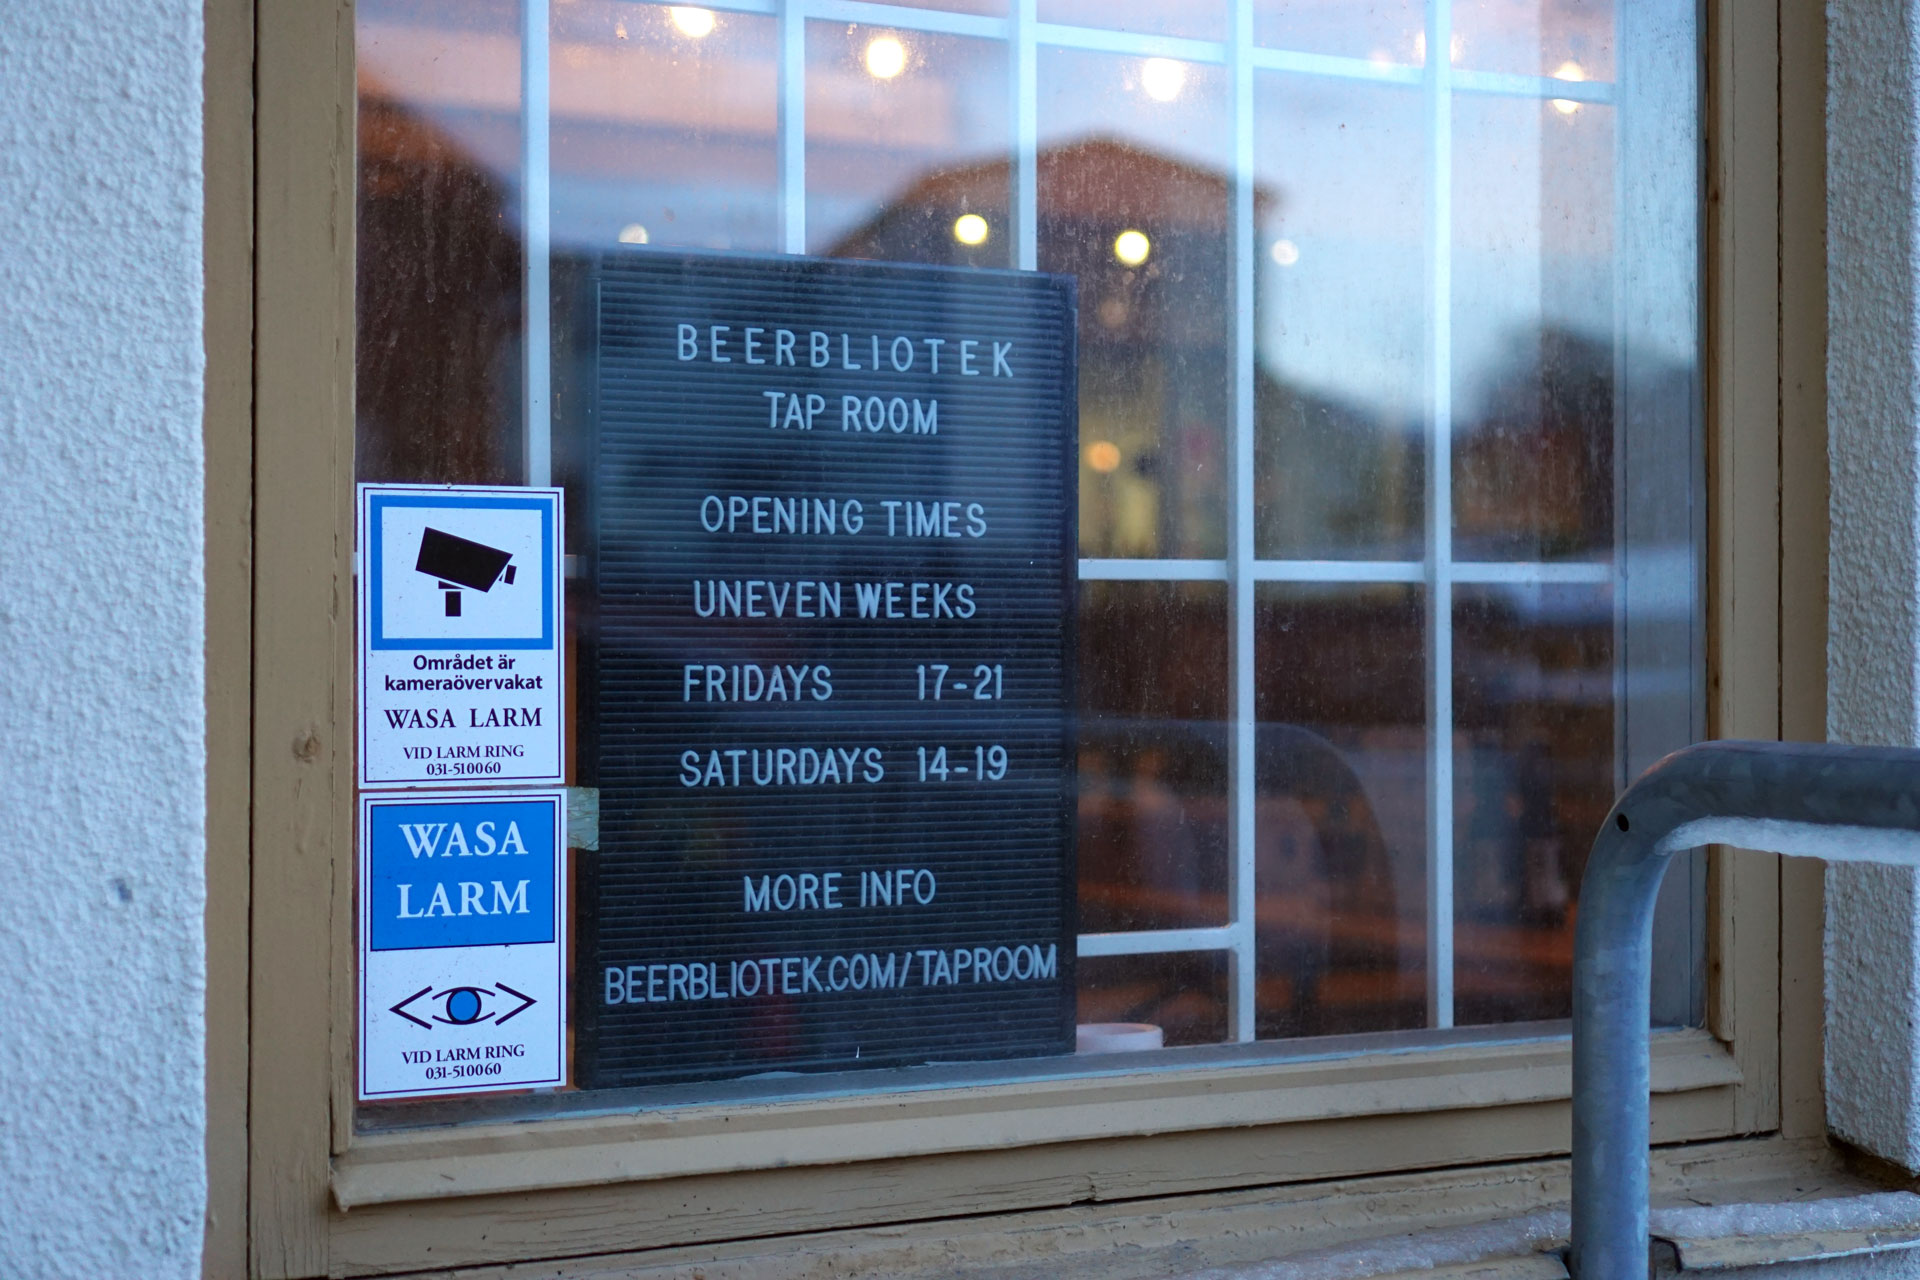 A sign with the opening times in the window of the Beerbliotek Tap Room in Gothenburg Sweden.